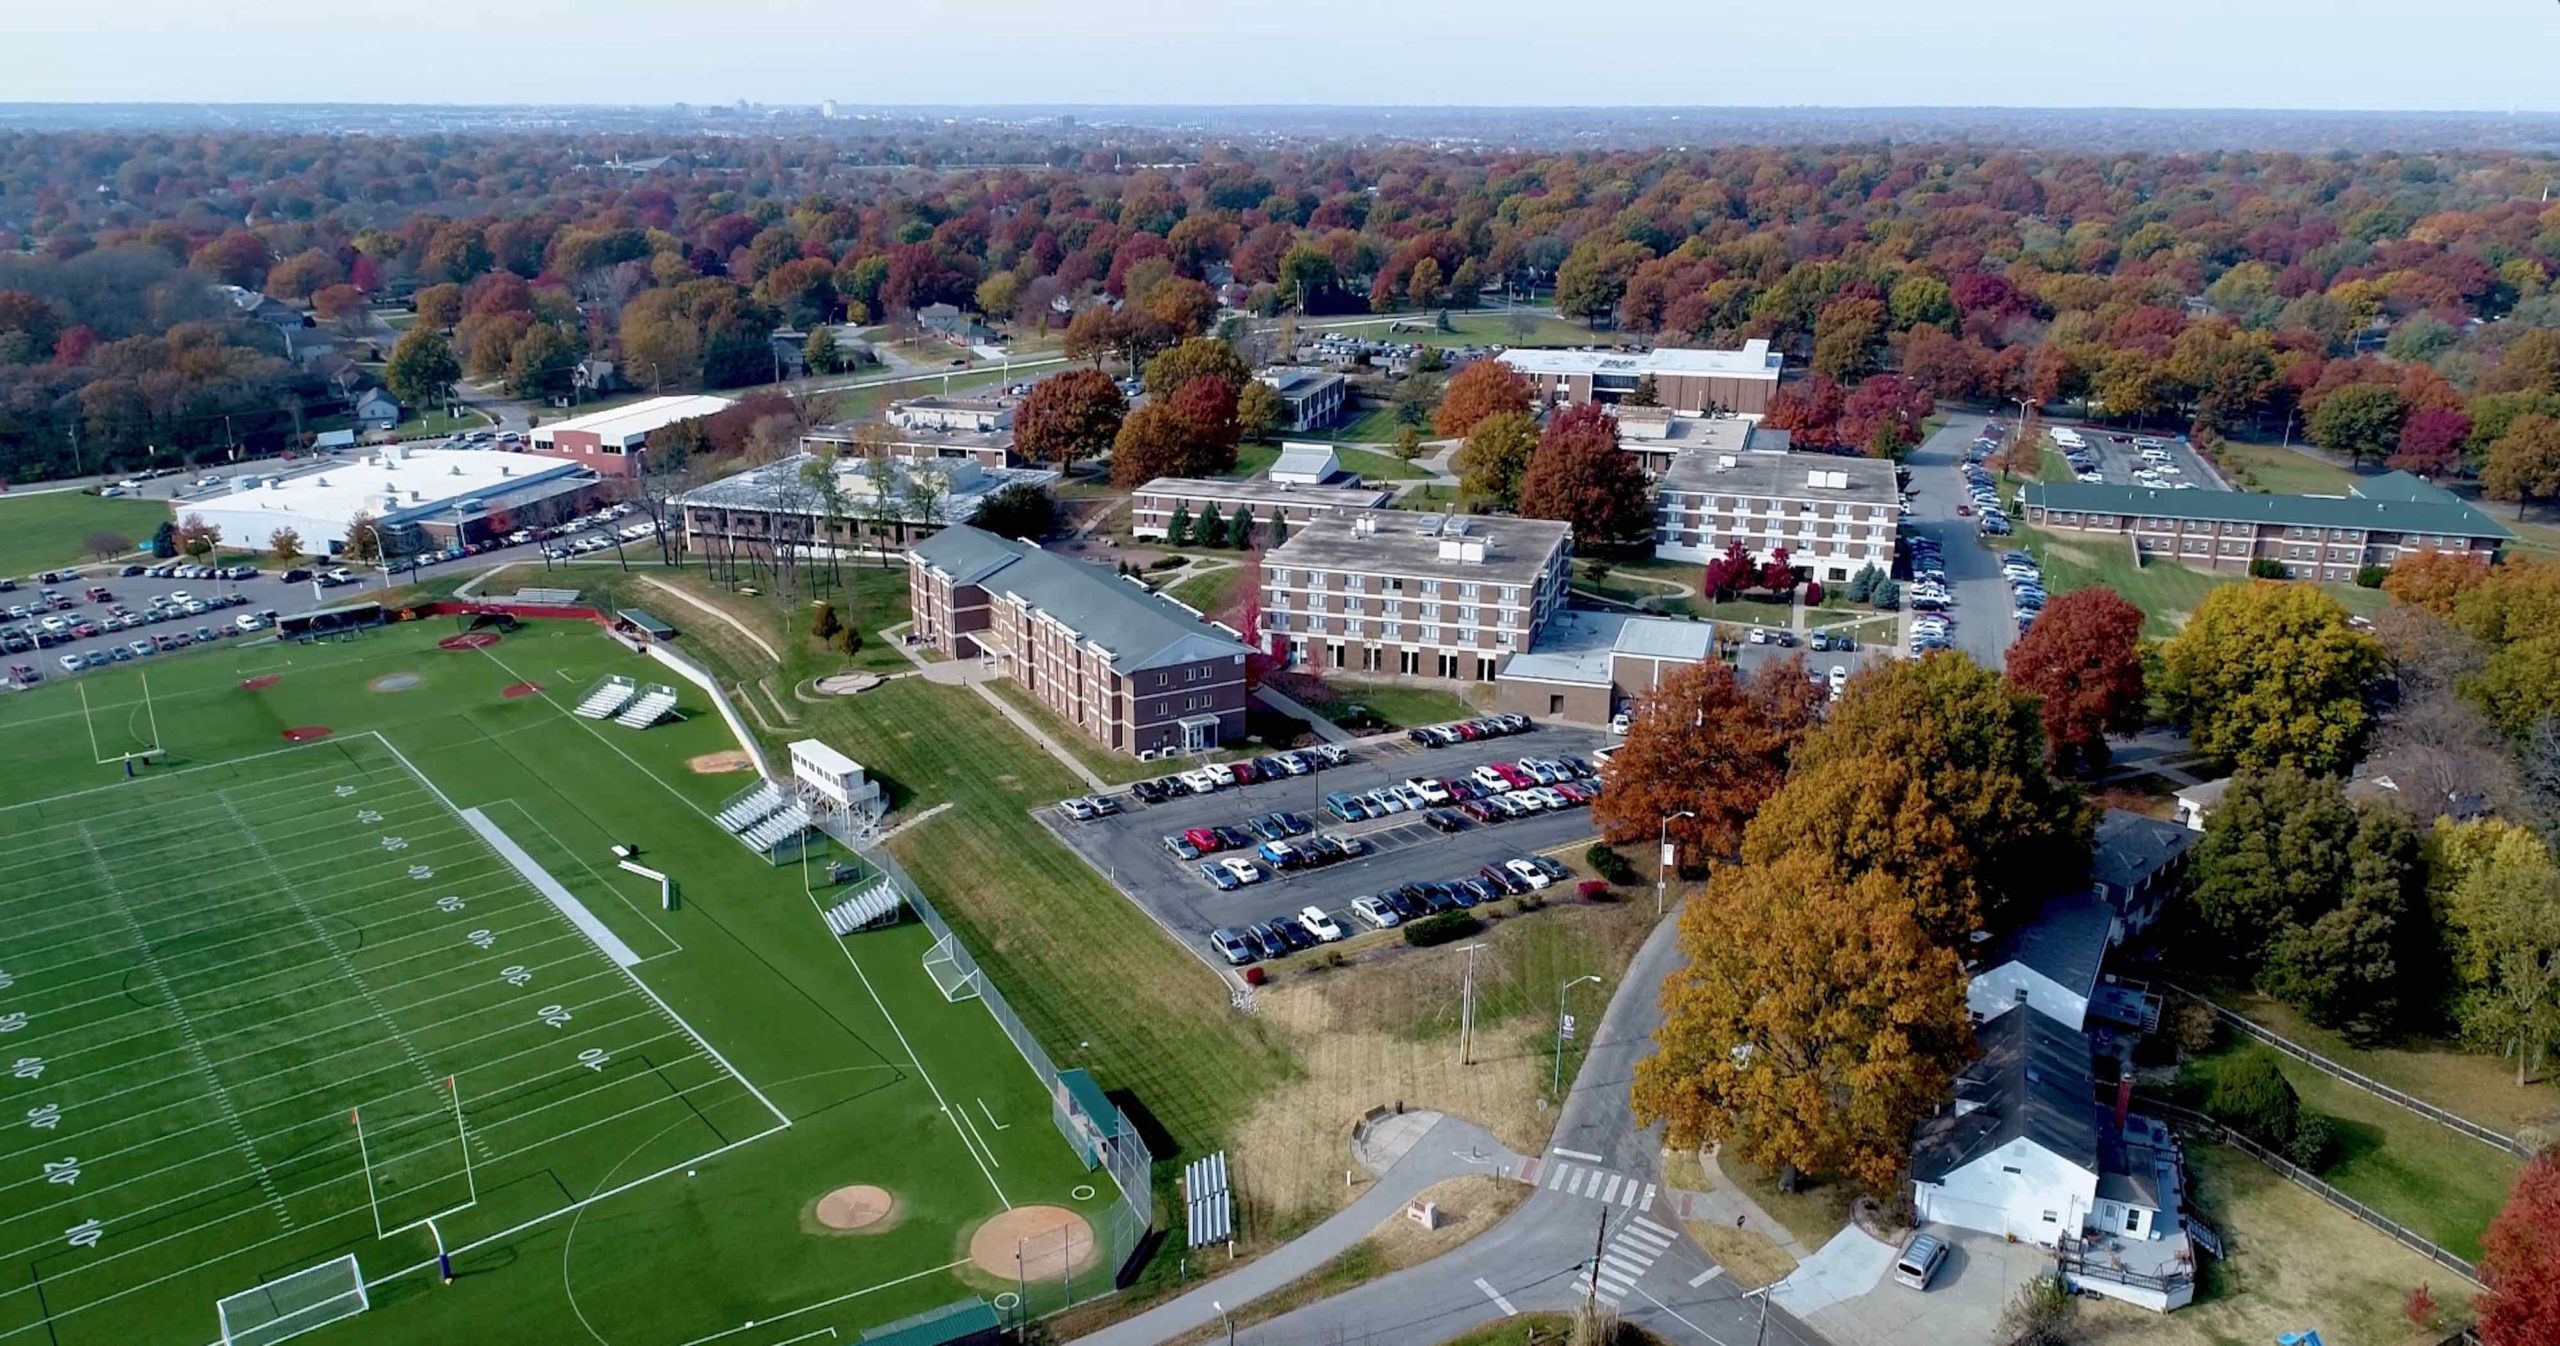 Aerial image of the Avila campus from the southeast side looking toward the northwest in the fall